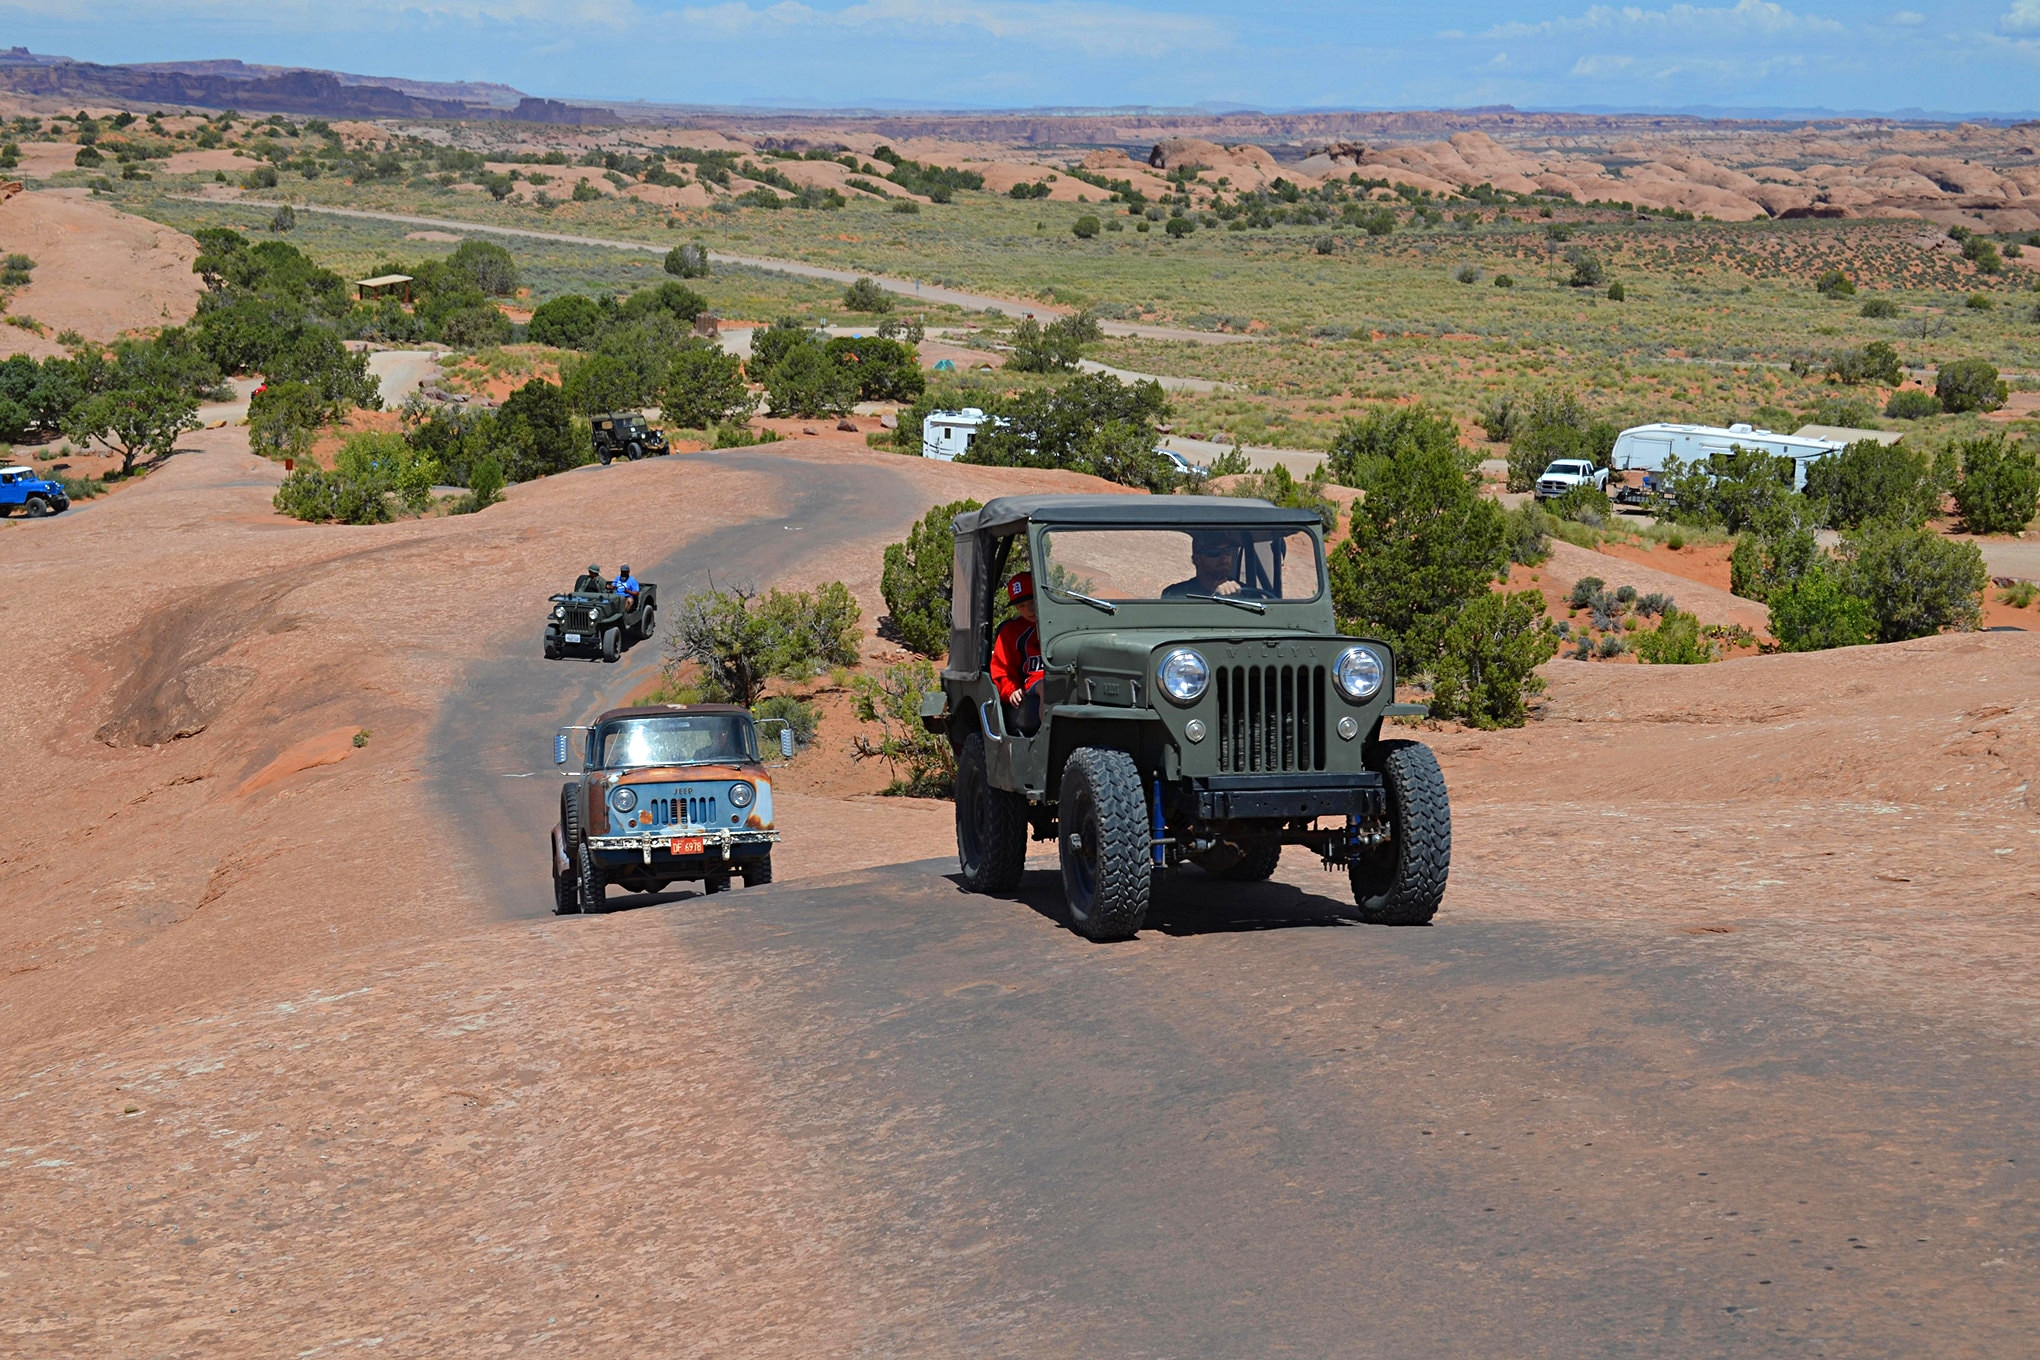 064 willys rally moab 2018 gallery.JPG